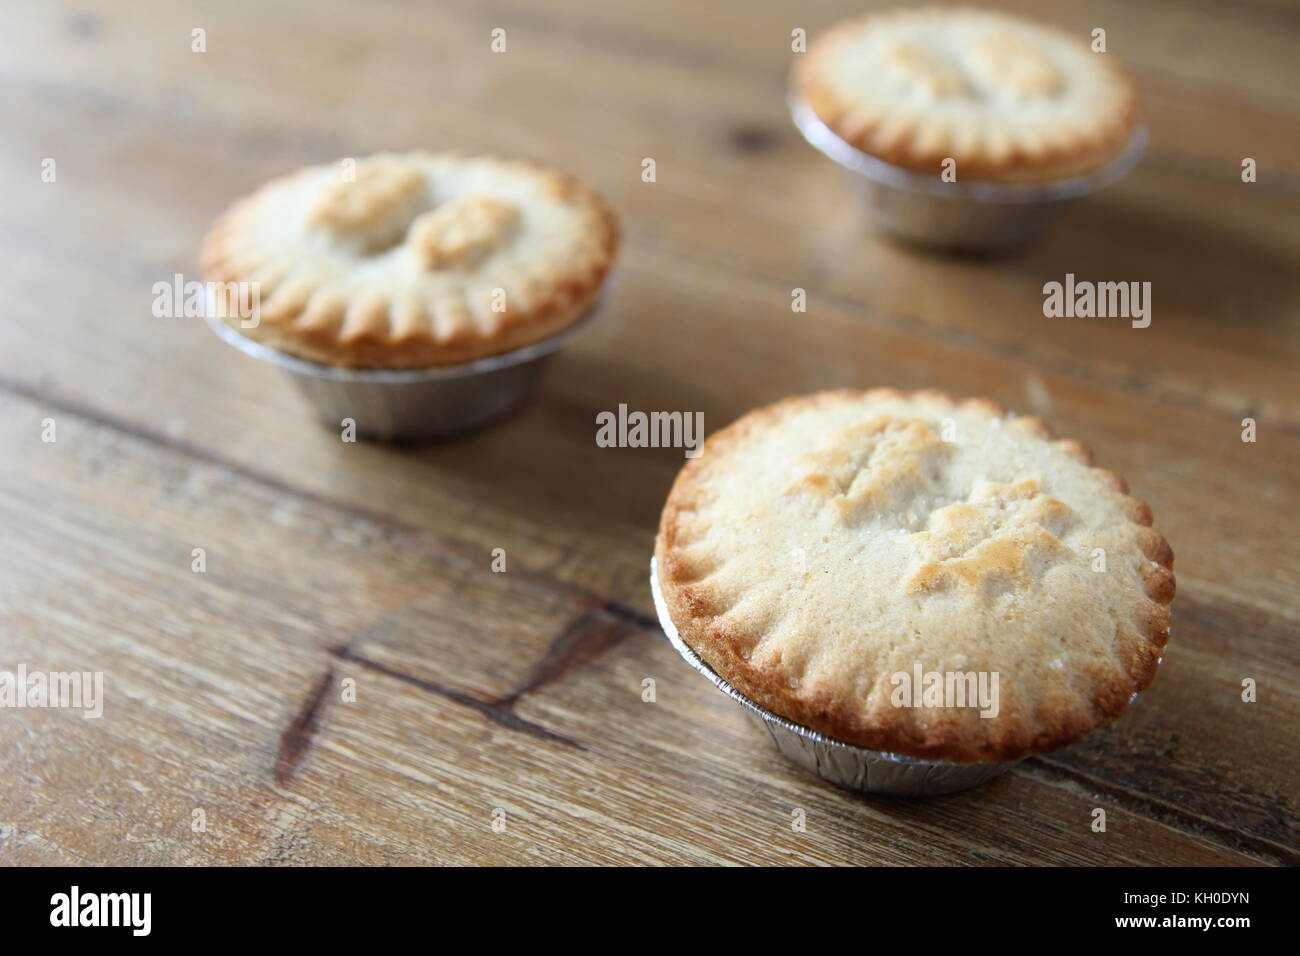 Close up shot of three mince pies in foil cases, traditional Christmas dessert - Stock Image